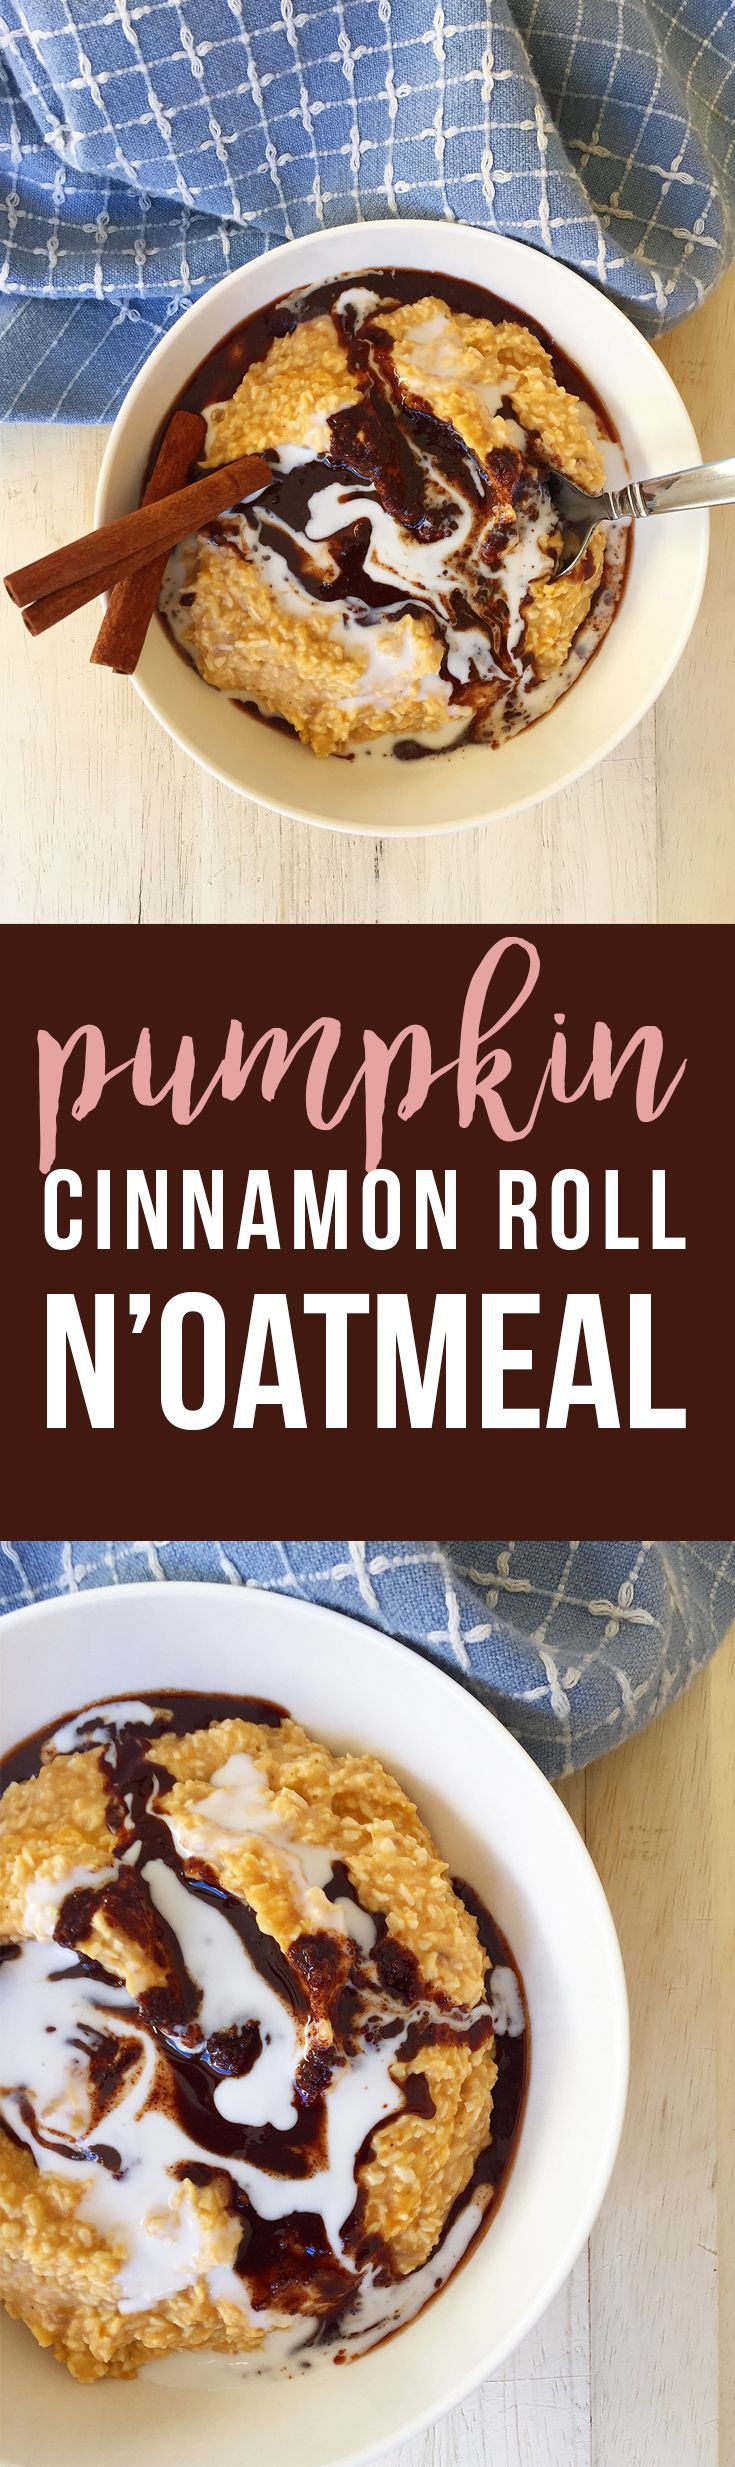 This easy Pumpkin Cinnamon Roll N'Oatmeal makes a delicious holiday alternative to oatmeal for breakfast, snack, or treat. (grain/gluten free, dairy free, paleo, vegan)   Fresh Planet Flavor